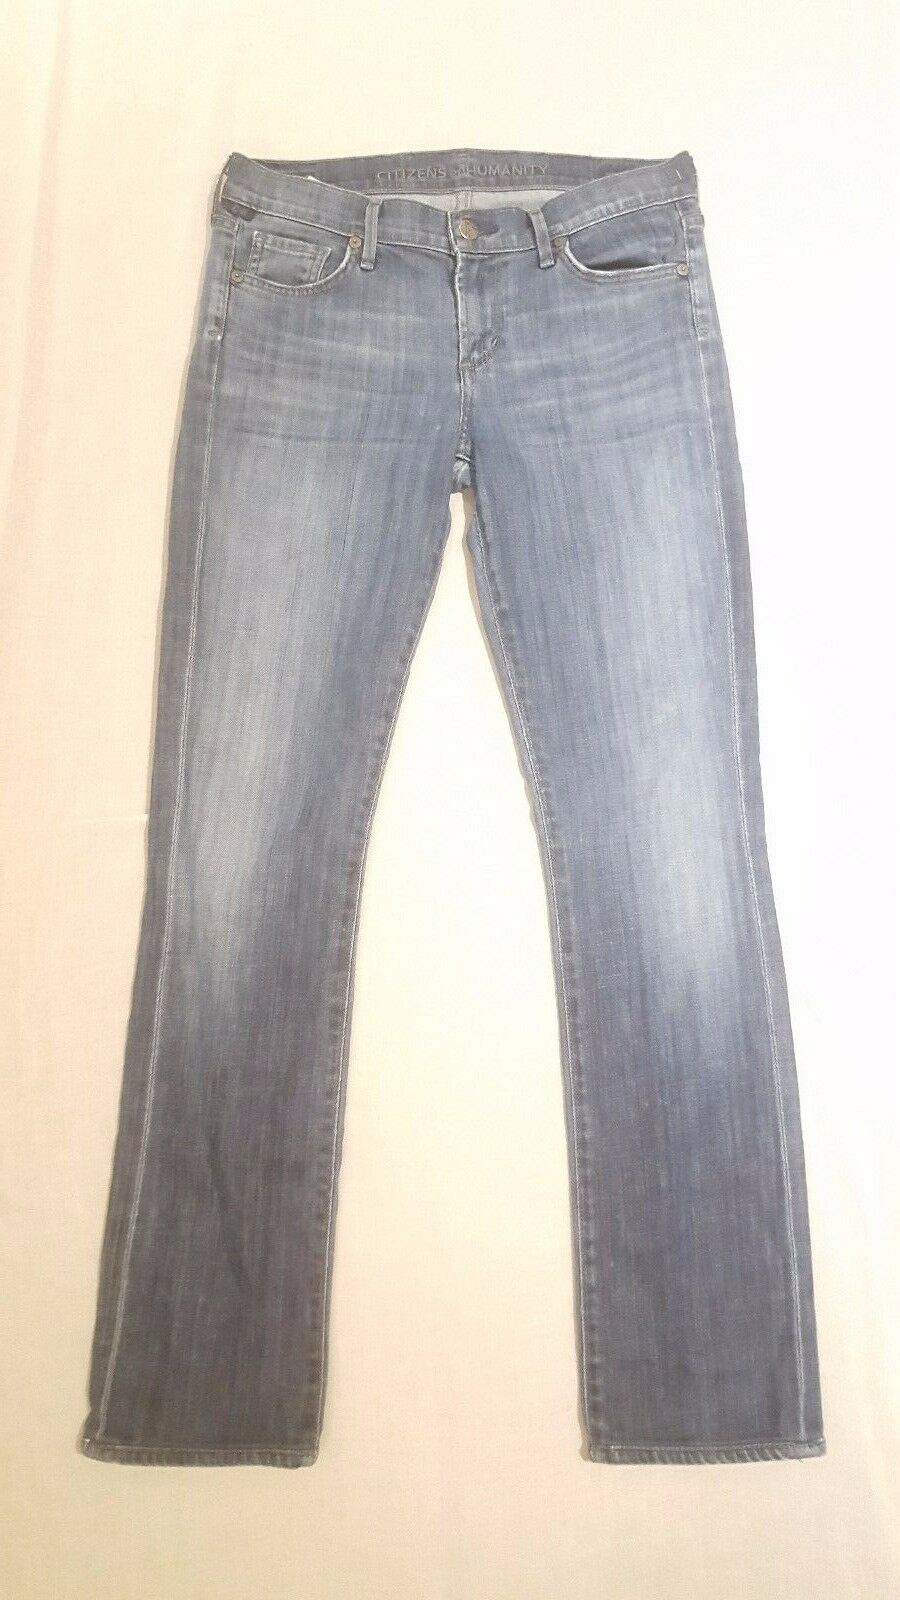 Citizens of Humanity Ava Straight Leg Jeans in Decade Size 27 X 30